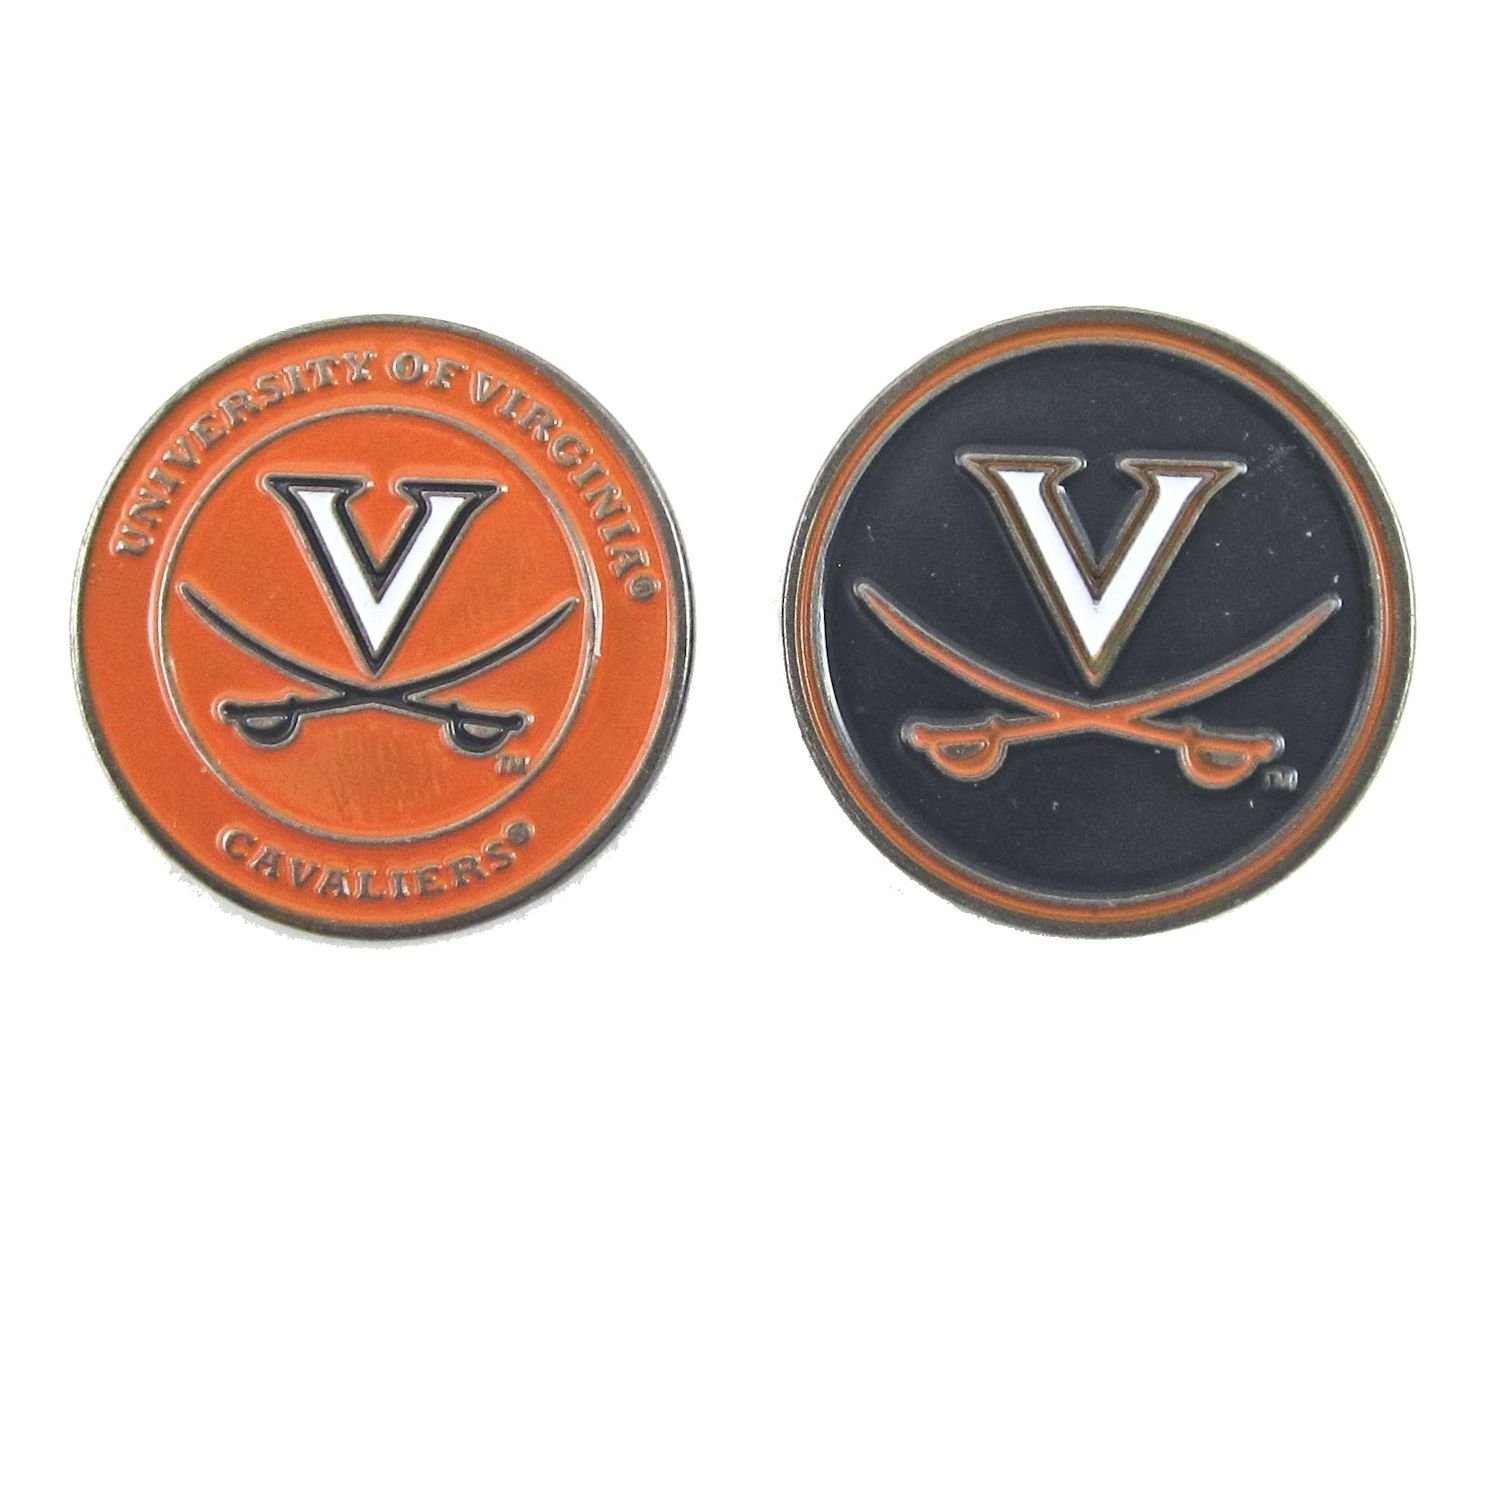 Virginia Cavaliers UVA Double Sided Golf Ball Marker, UVA Cavaliers Ball Marker By Waggle Pro Shop,USA